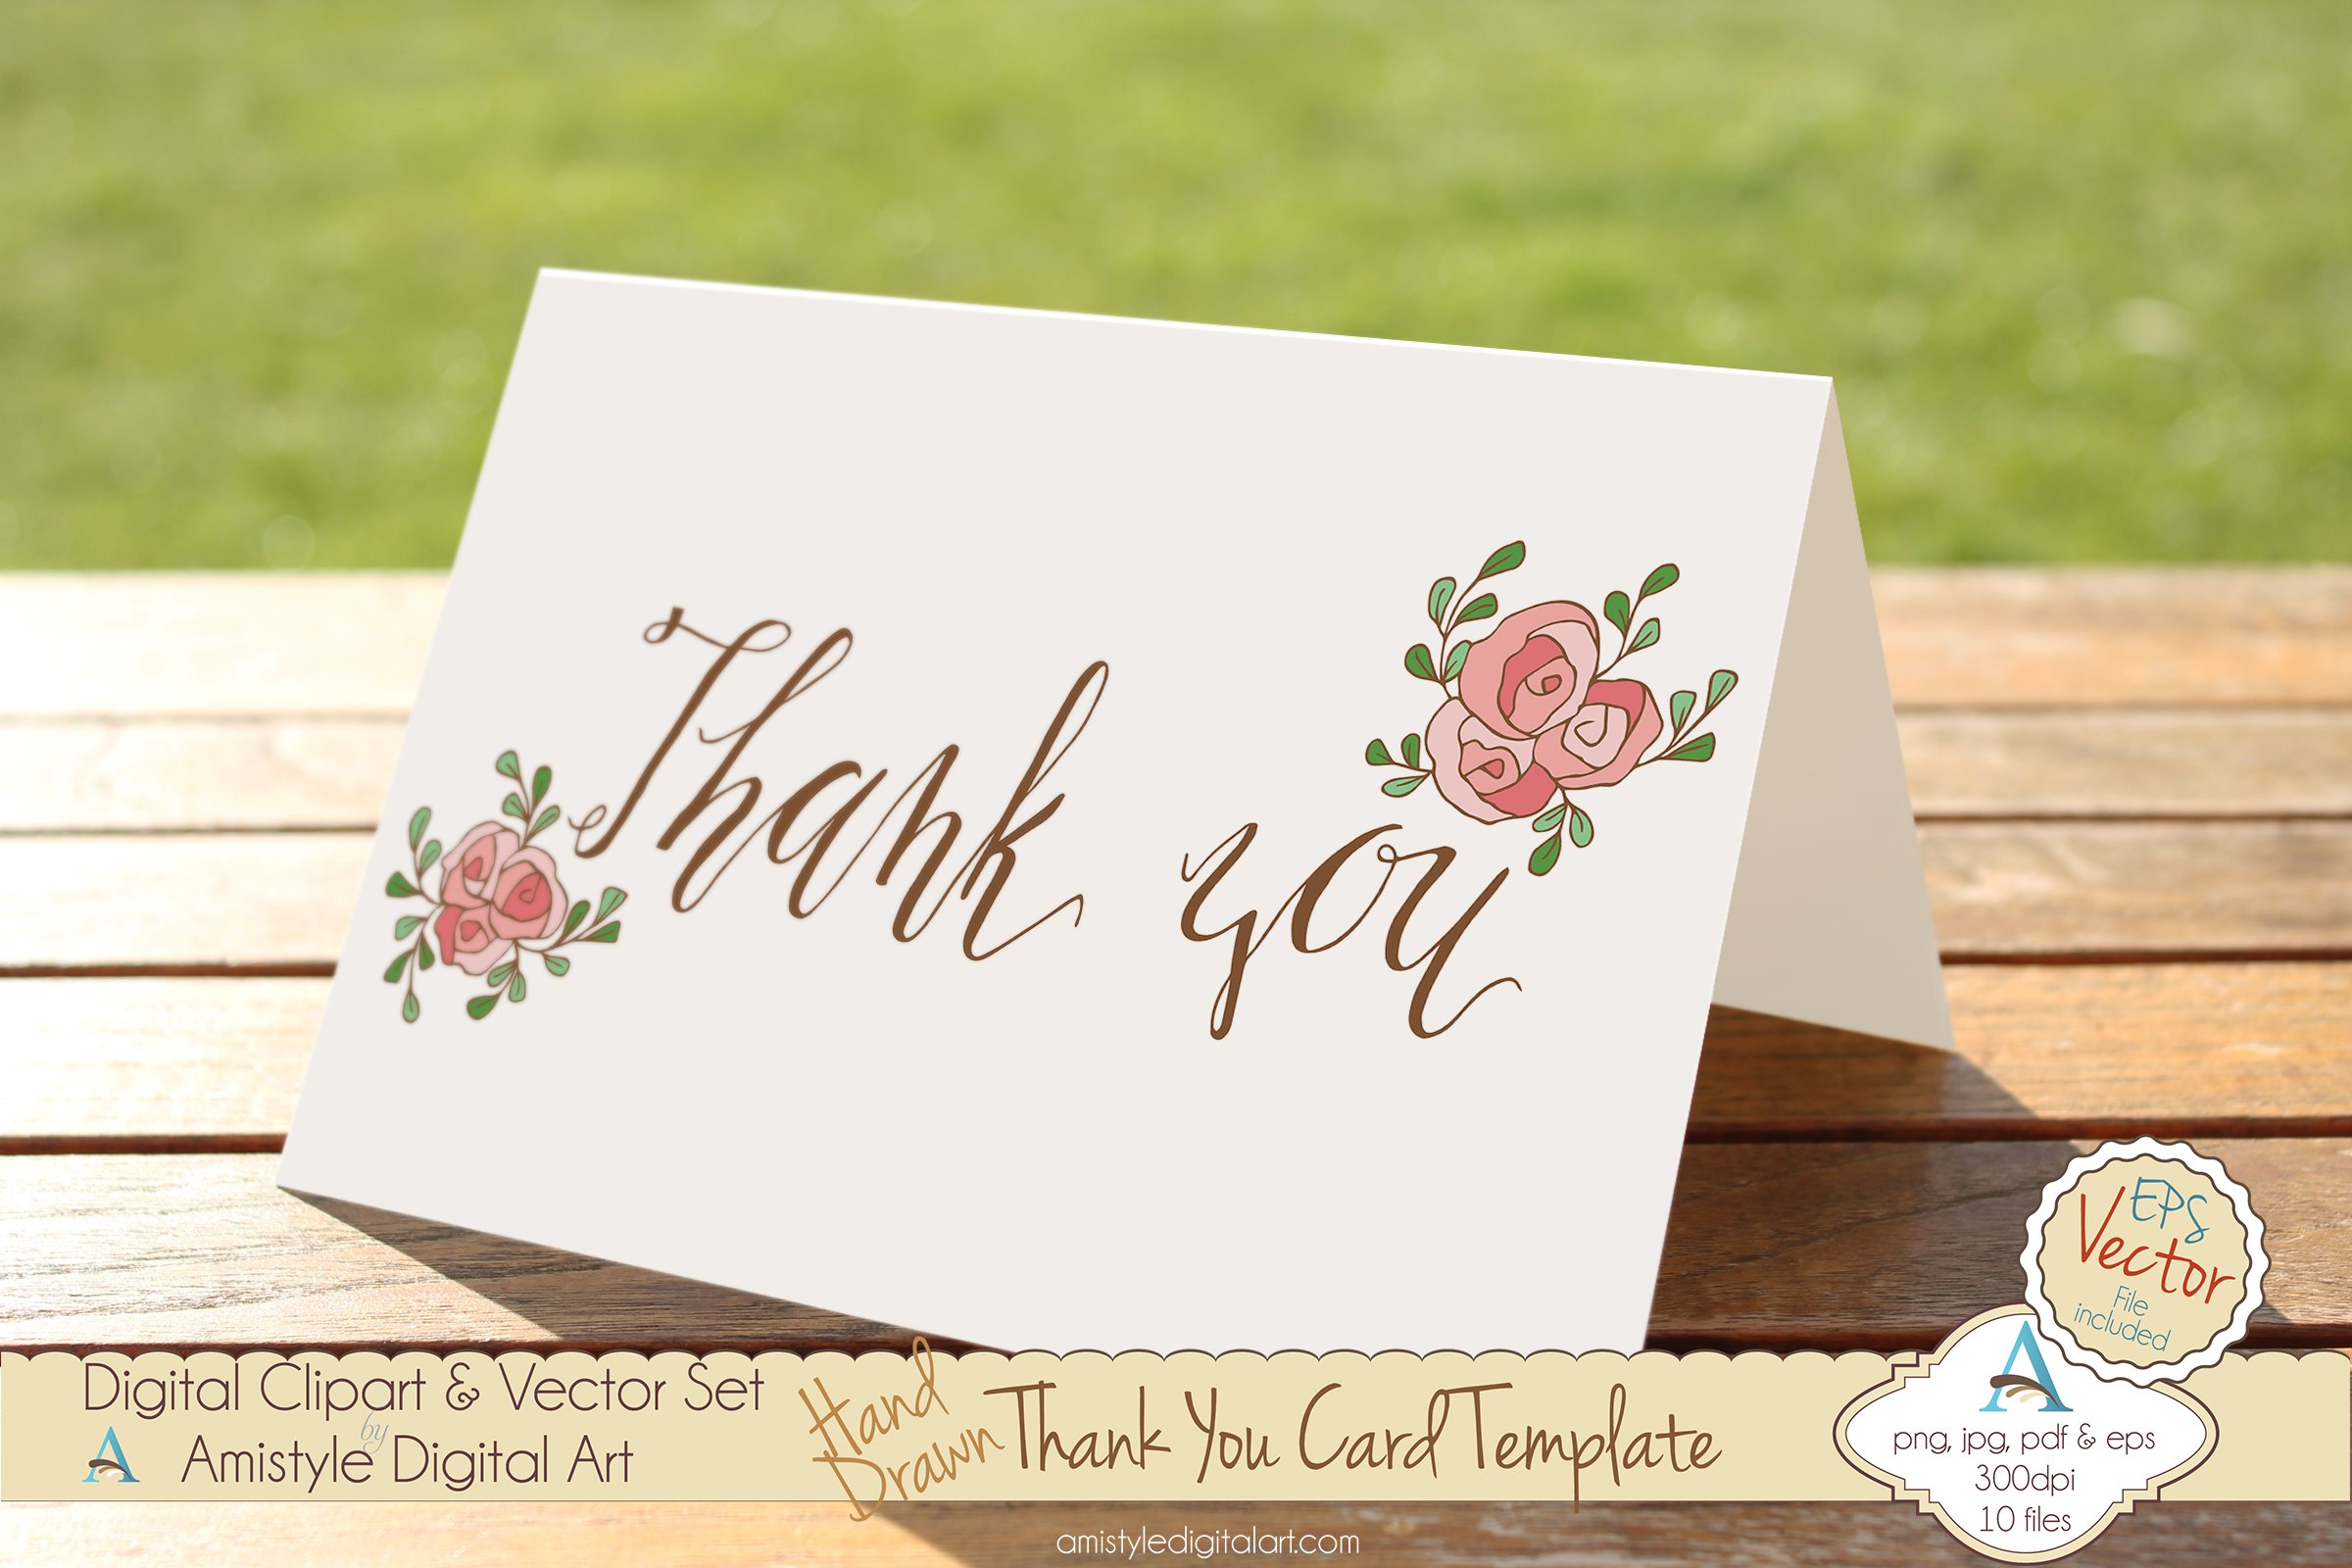 thank you pink rose card template card templates creative market. Black Bedroom Furniture Sets. Home Design Ideas